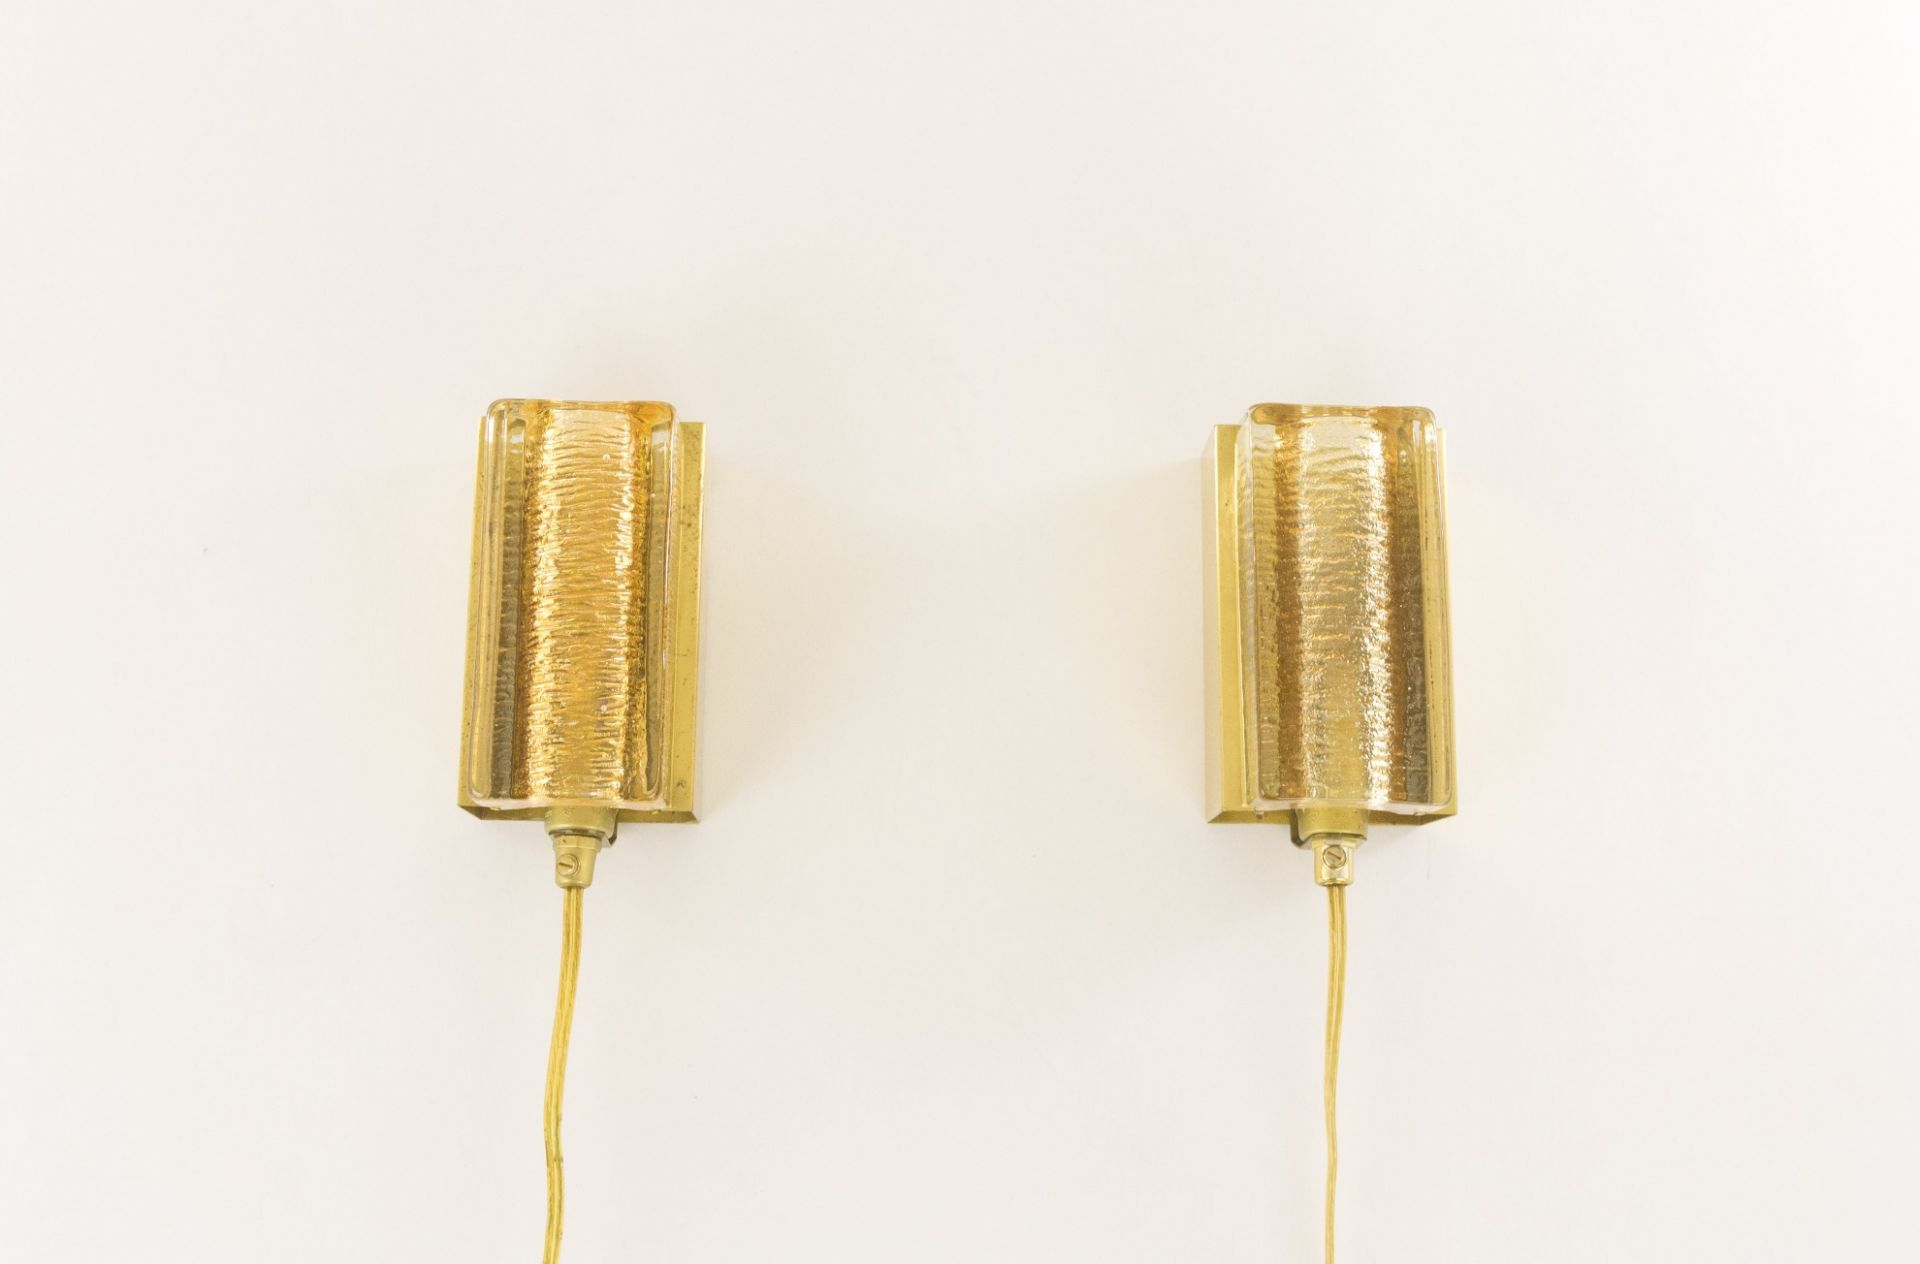 Pair of Atlantic glass and brass Wall lamps by Vitrika in gold, 1970s